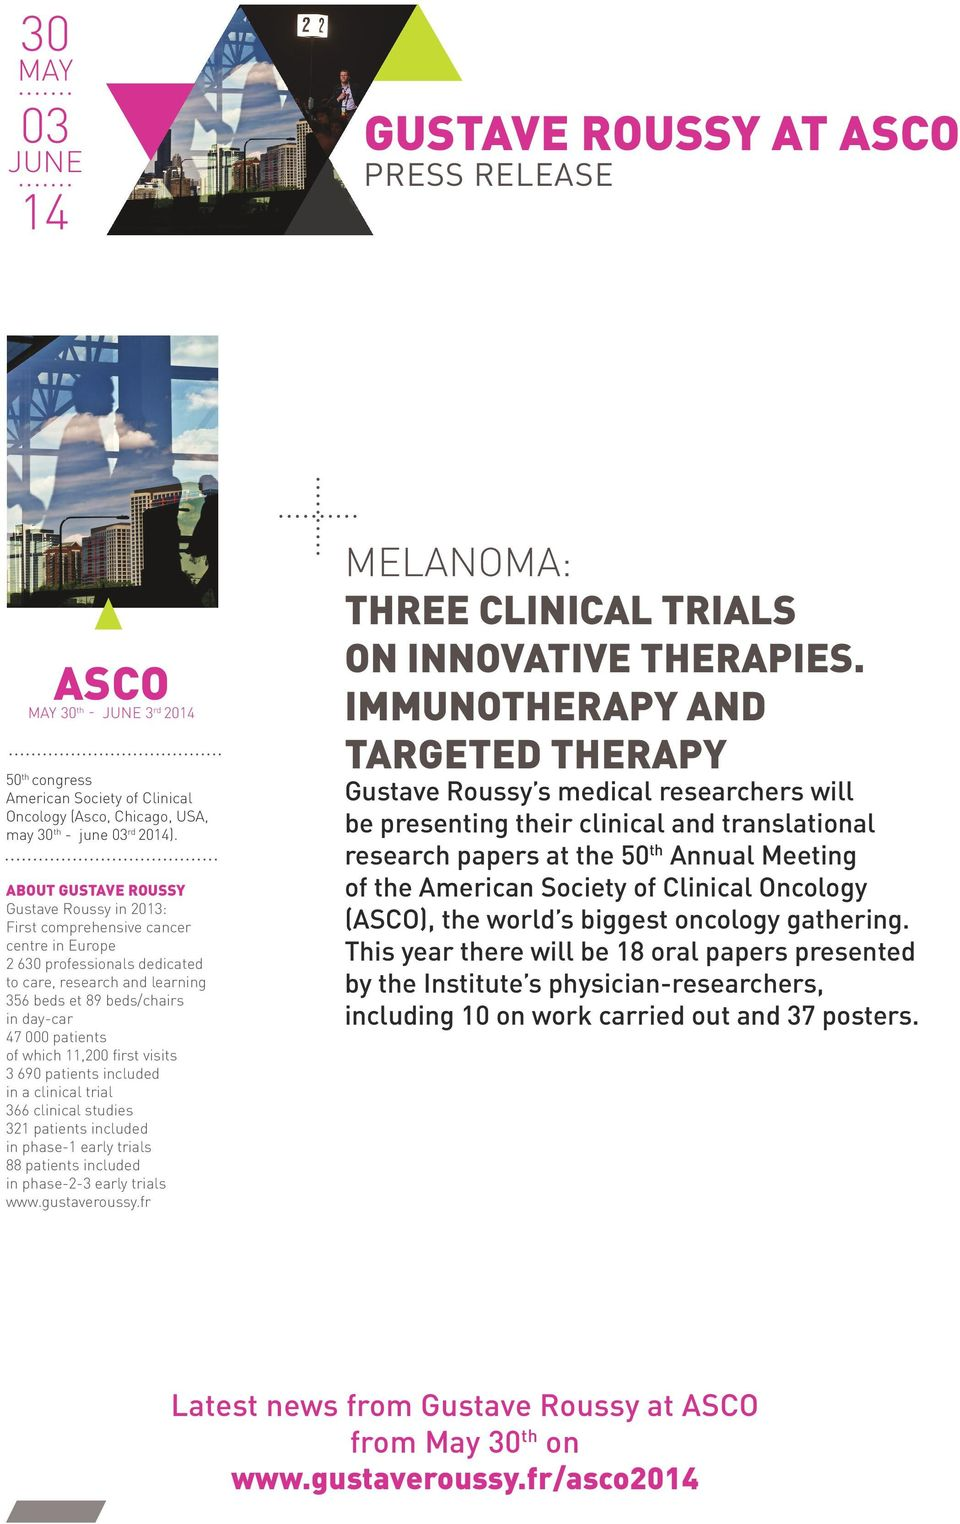 patients of which 11,200 first visits 3 690 patients included in a clinical trial 366 clinical studies 321 patients included in phase-1 early trials 88 patients included in phase-2-3 early trials www.